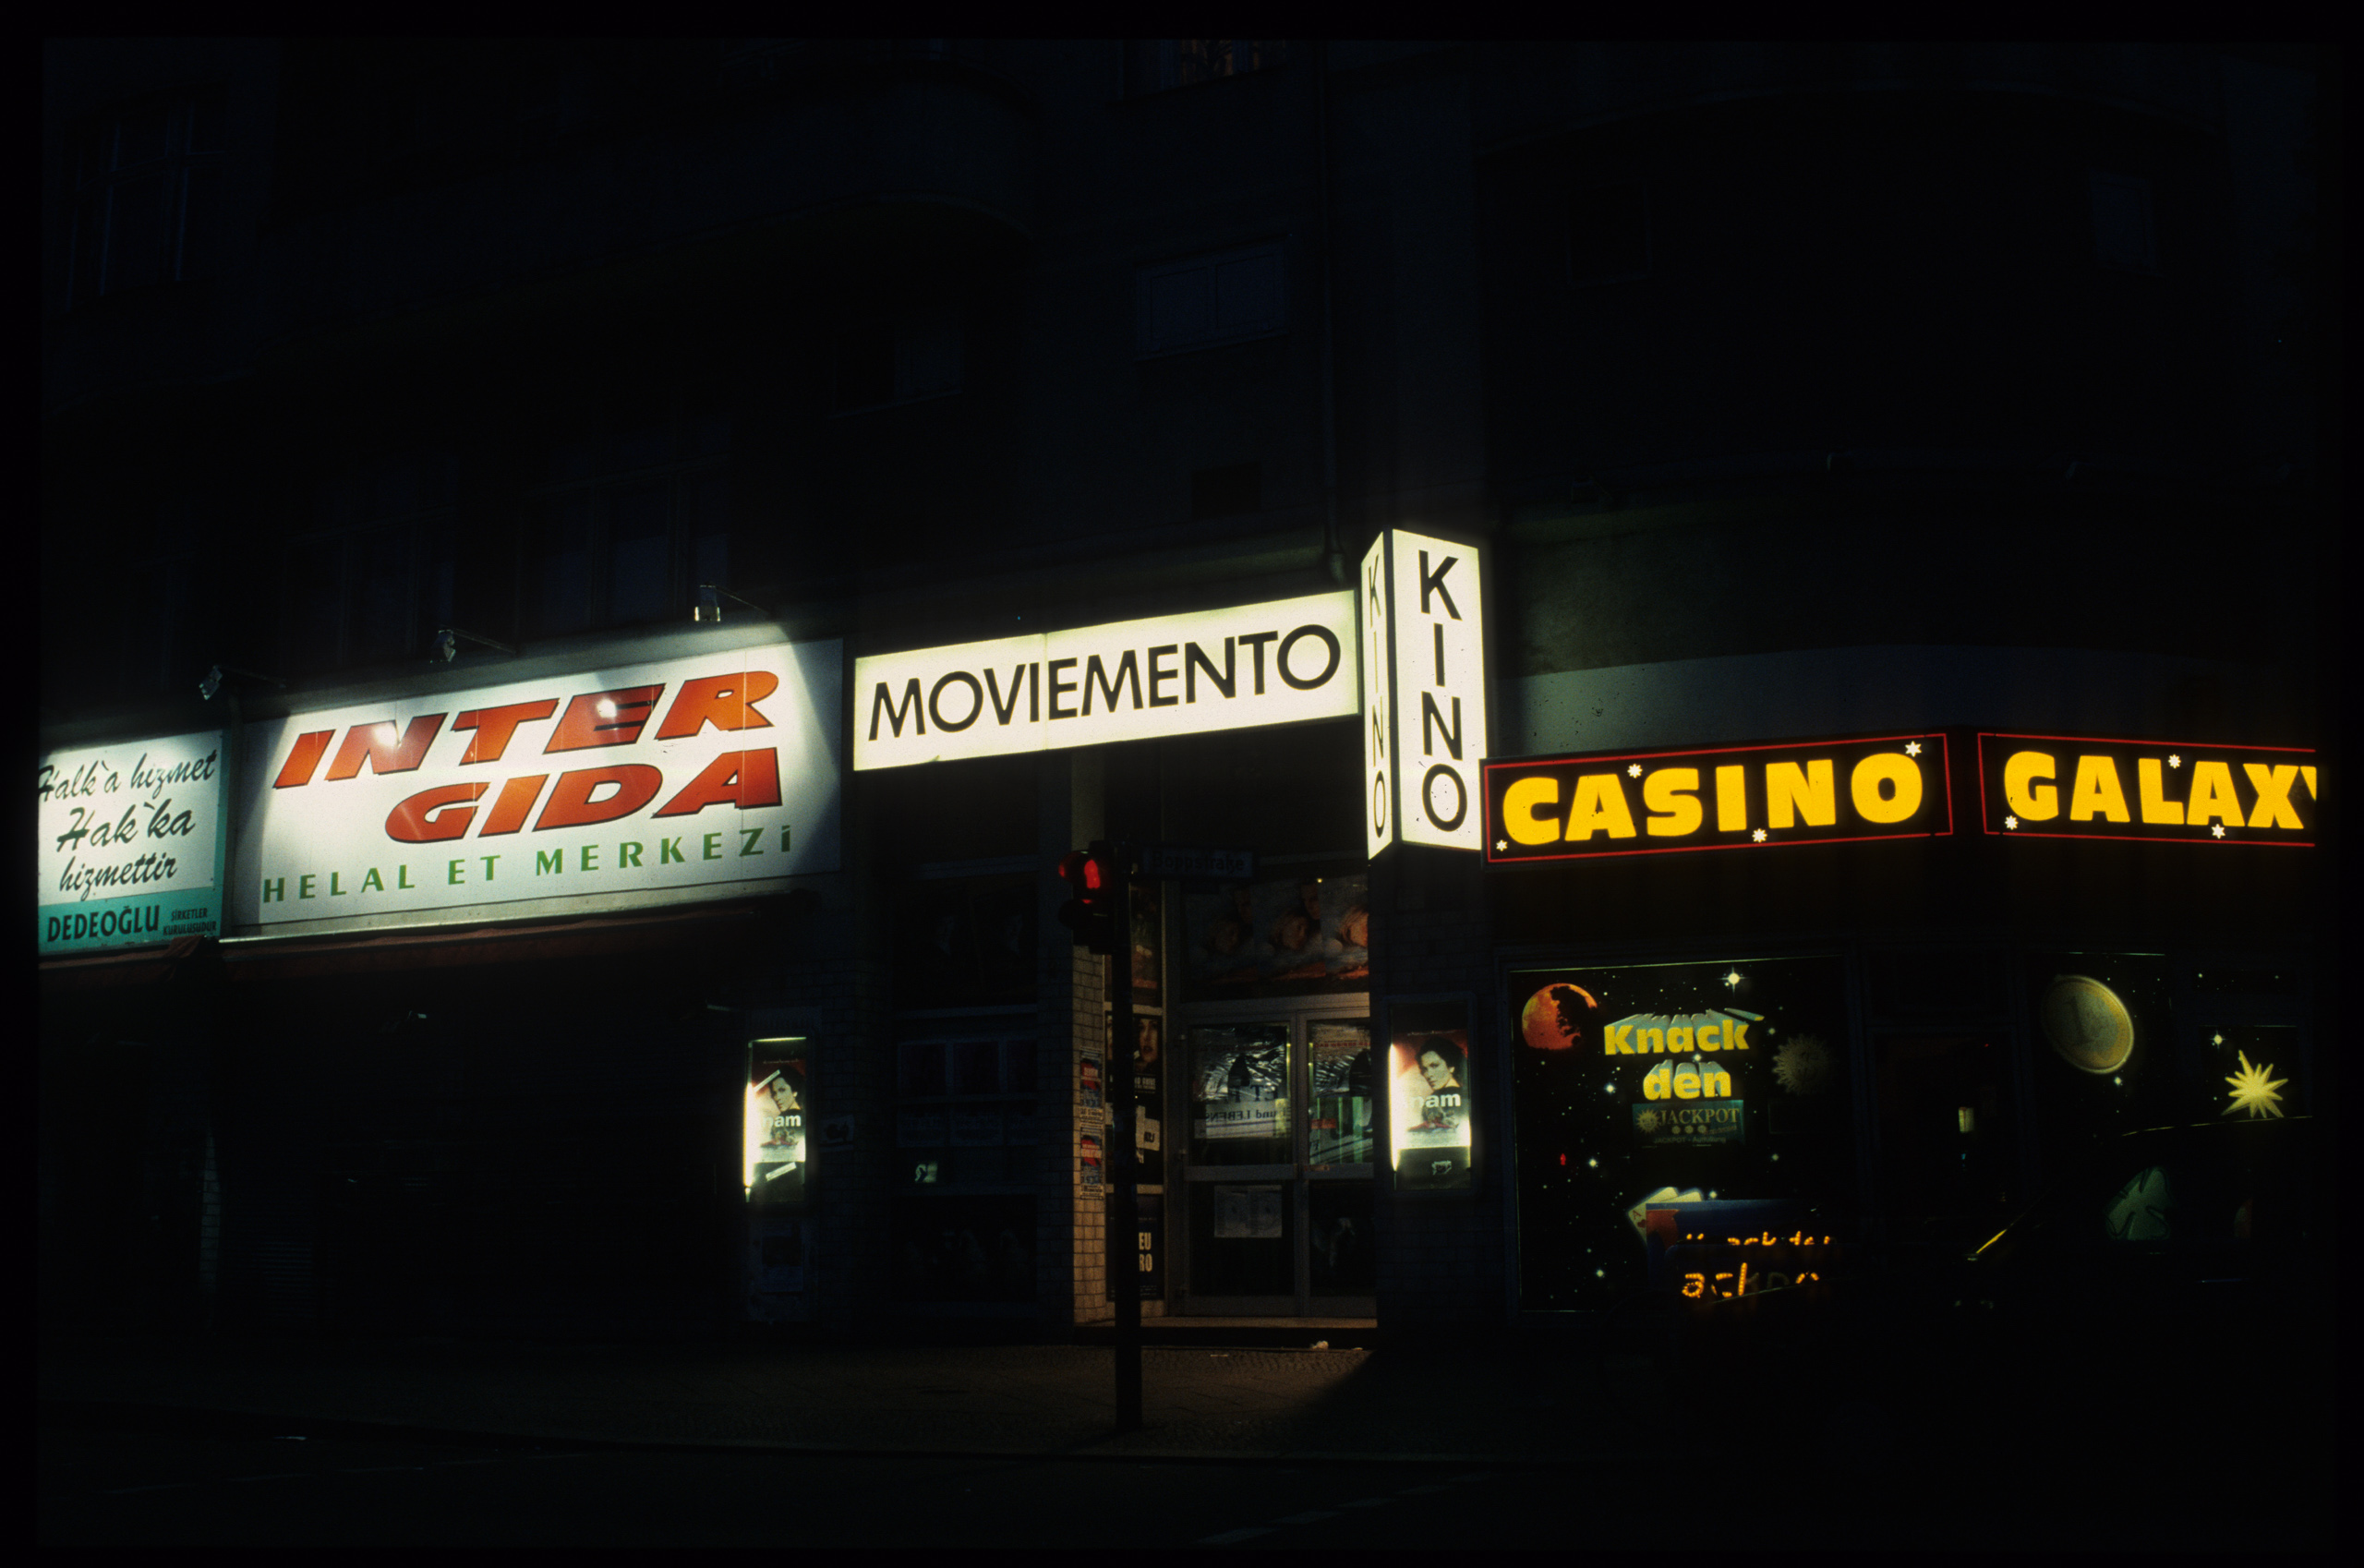 Color photo: façade at night with illuminated advertisements